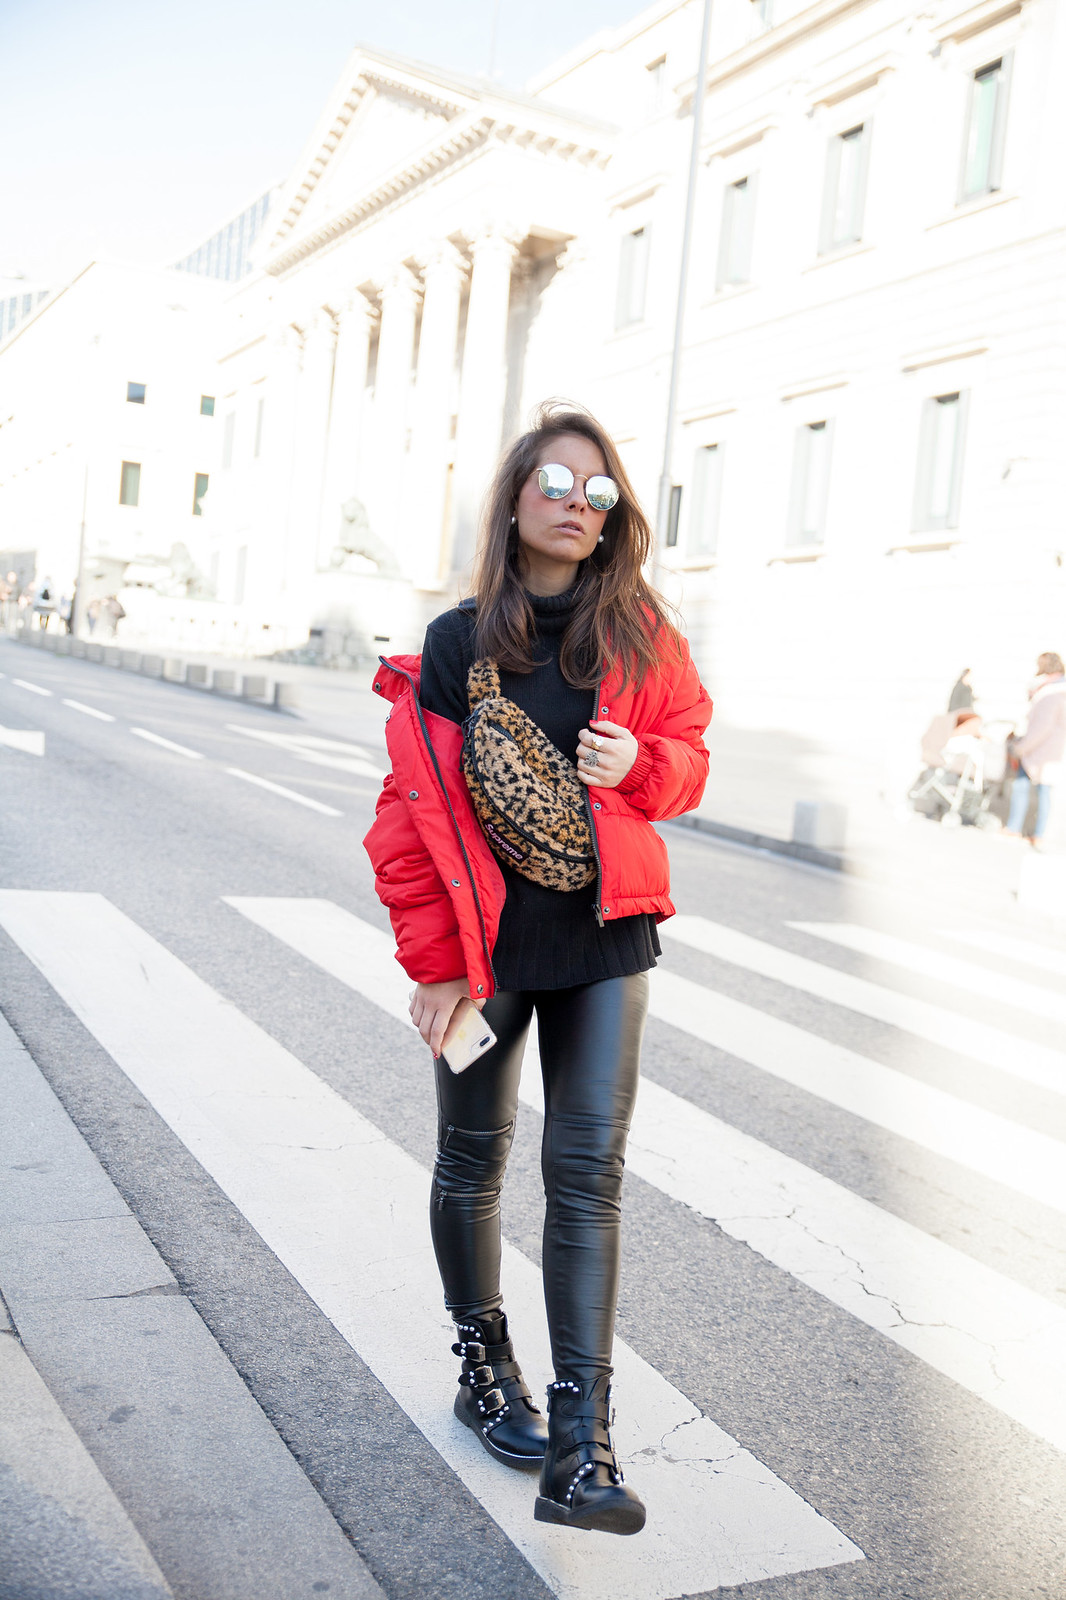 laura santolaria theguestgirl influencer madrid red coat Supreme bag tendencia riñonera de Superme NY streetstyle fashion weeks